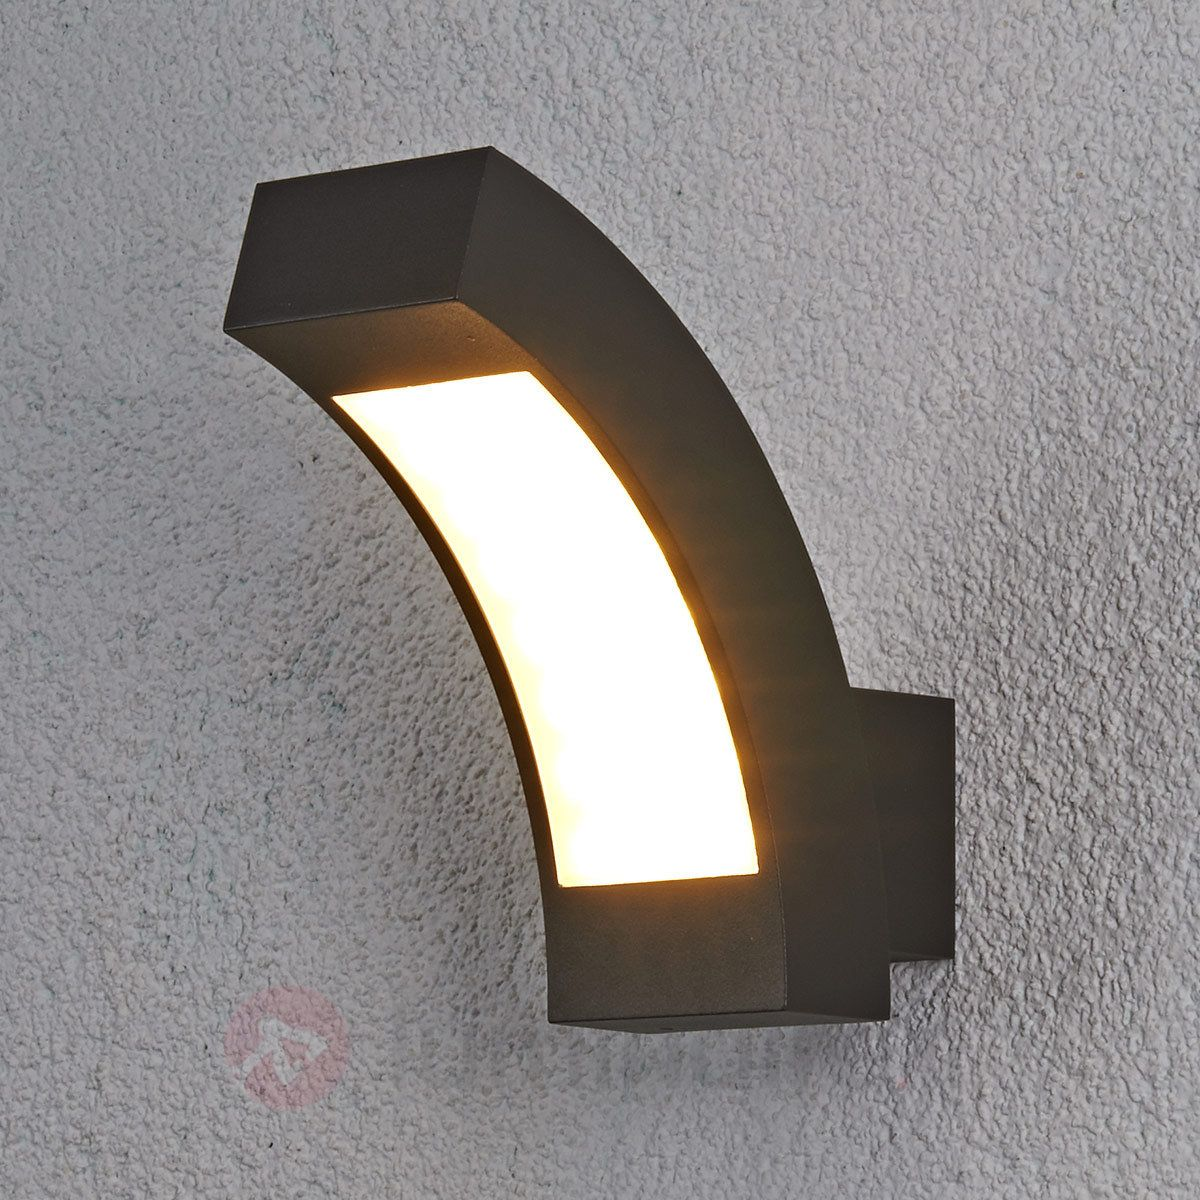 applique d 39 ext rieur led lennik ip54